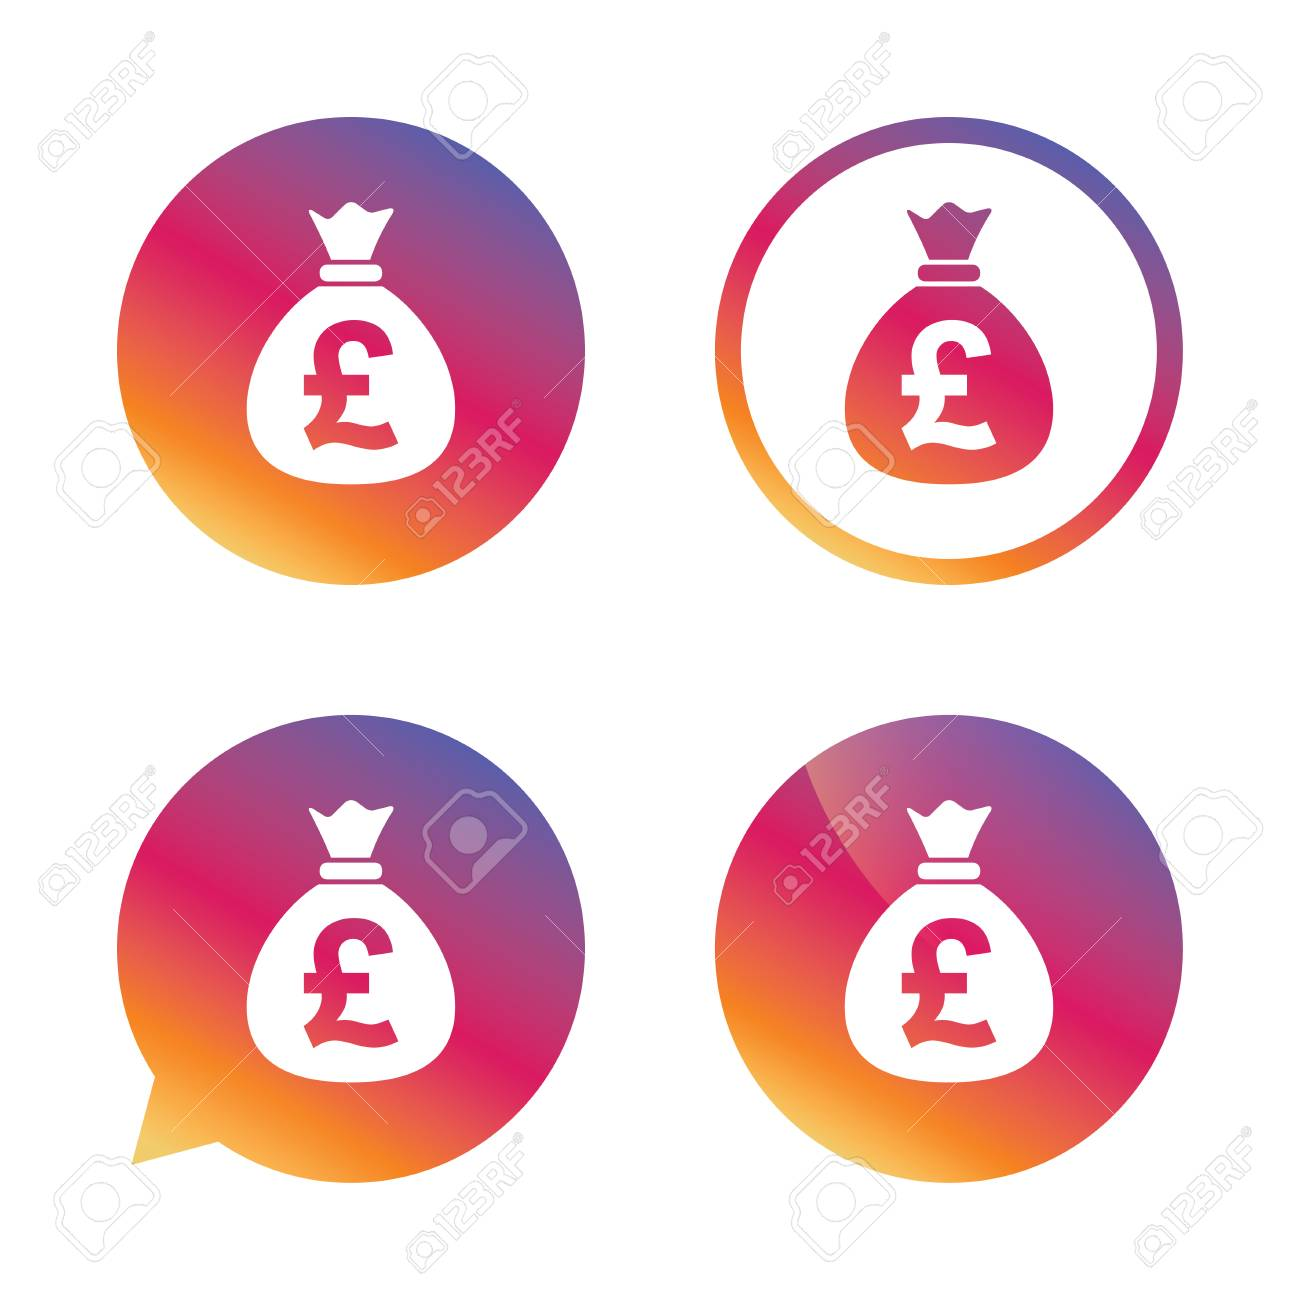 Money bag sign icon pound gbp currency symbol gradient buttons pound gbp currency symbol gradient buttons with flat icon buycottarizona Choice Image